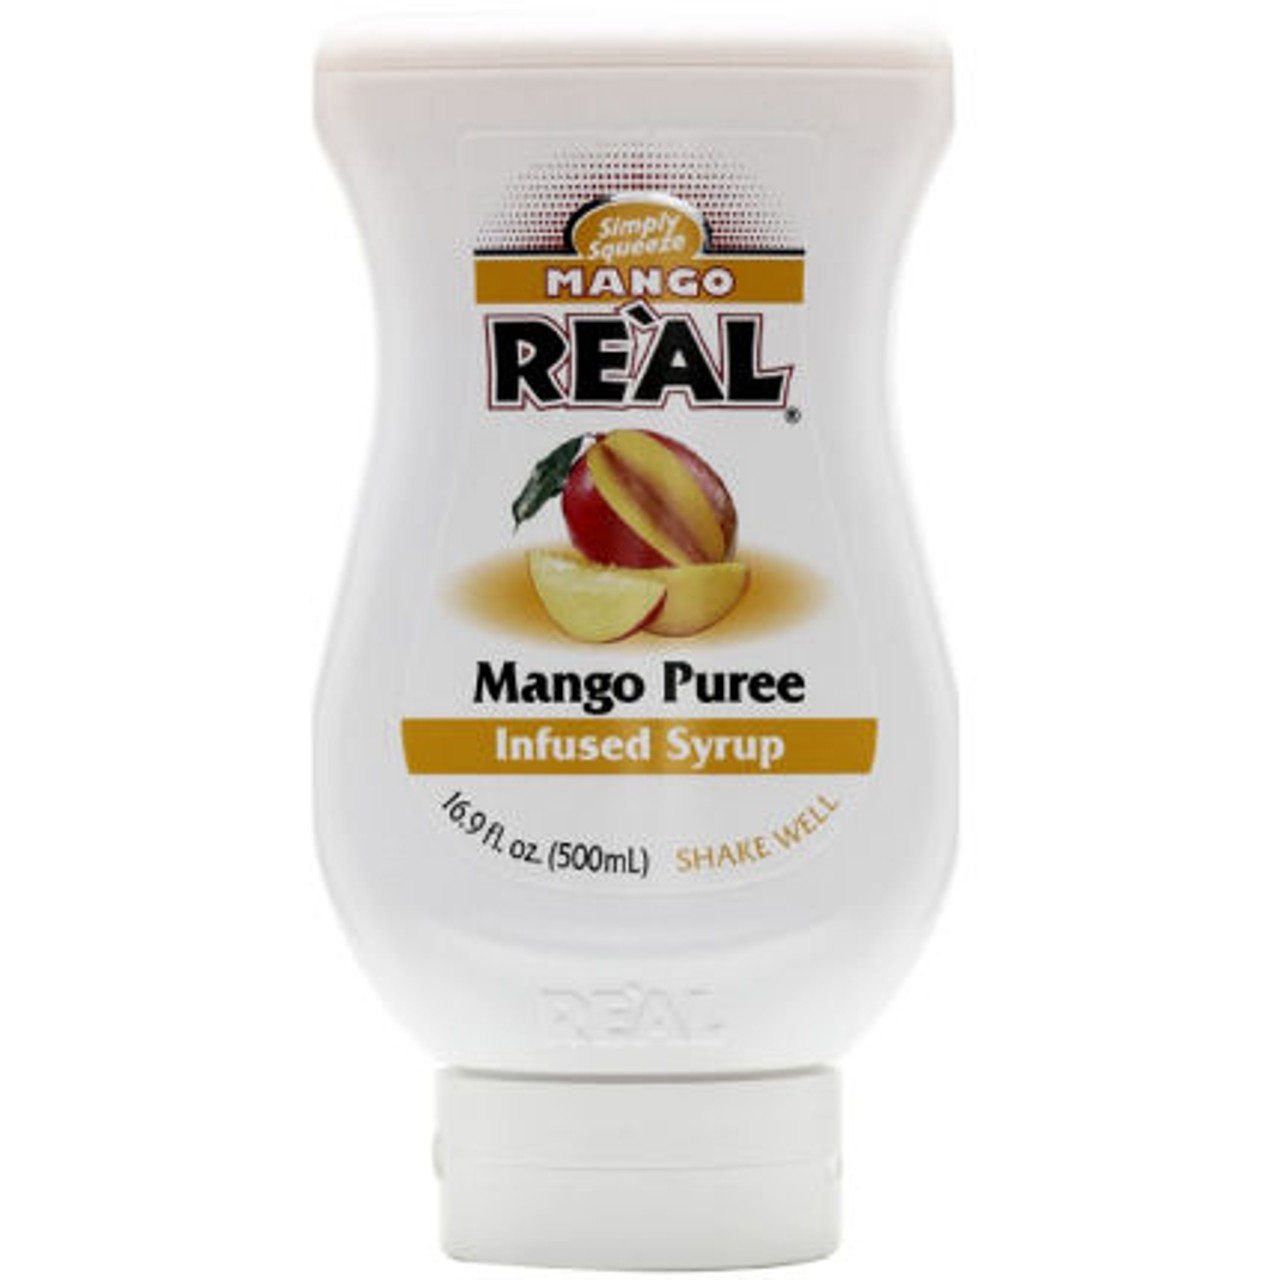 Mango Real Puree Infused Syrup 16.9oz